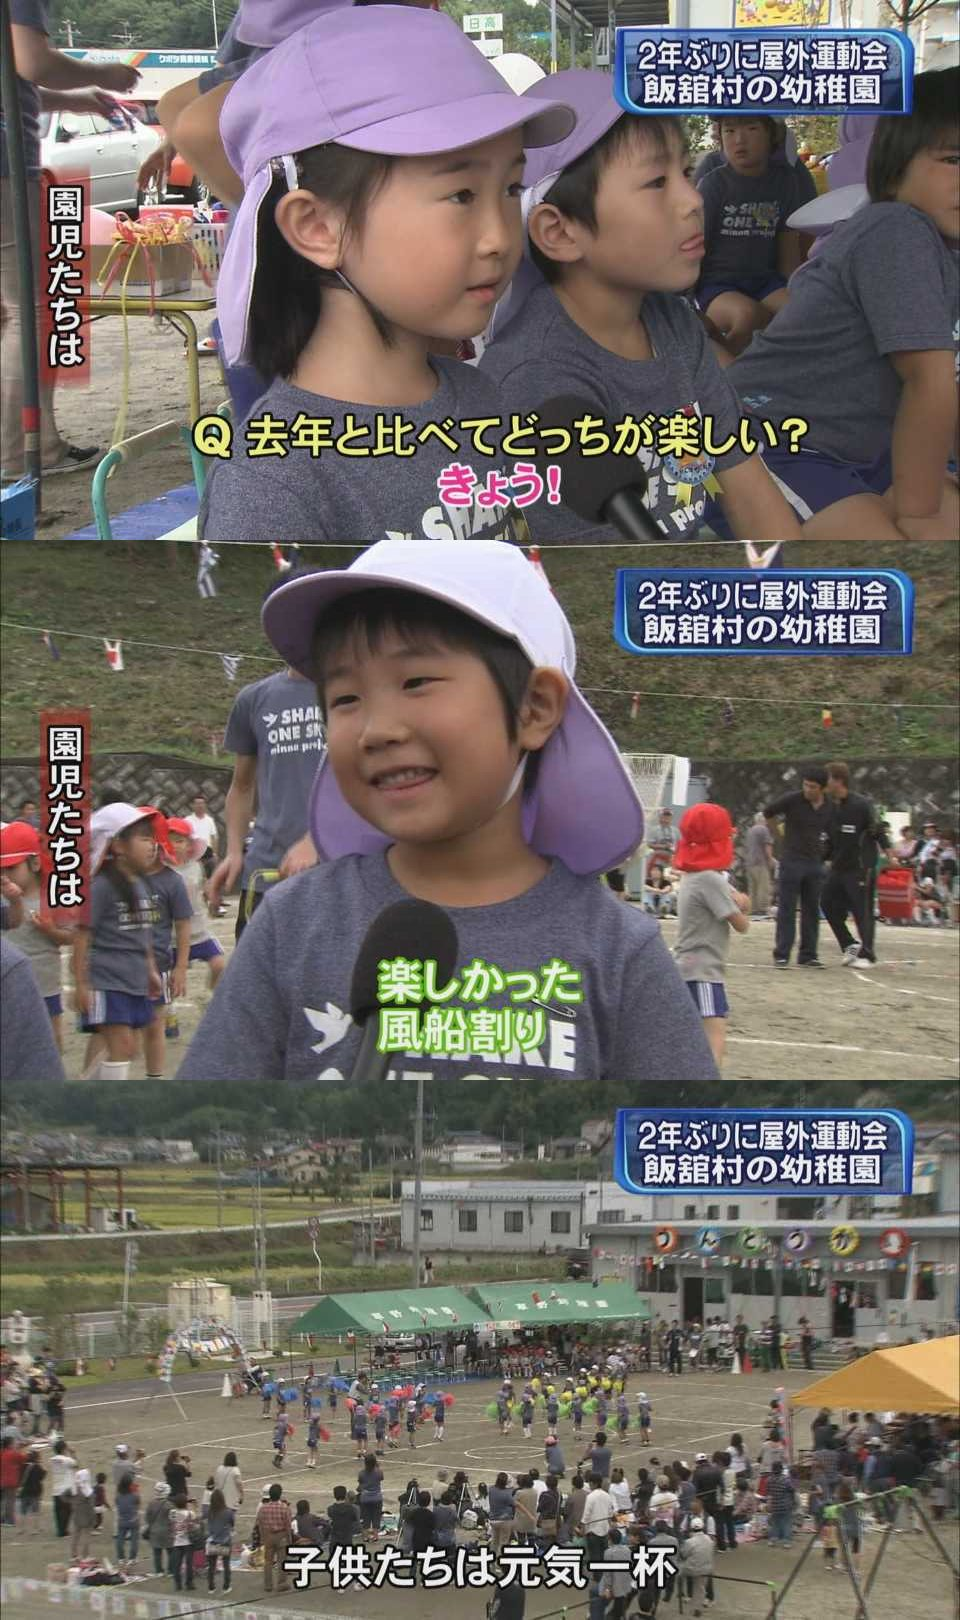 Two kindergartens in Fukushima held a sports meeting outside